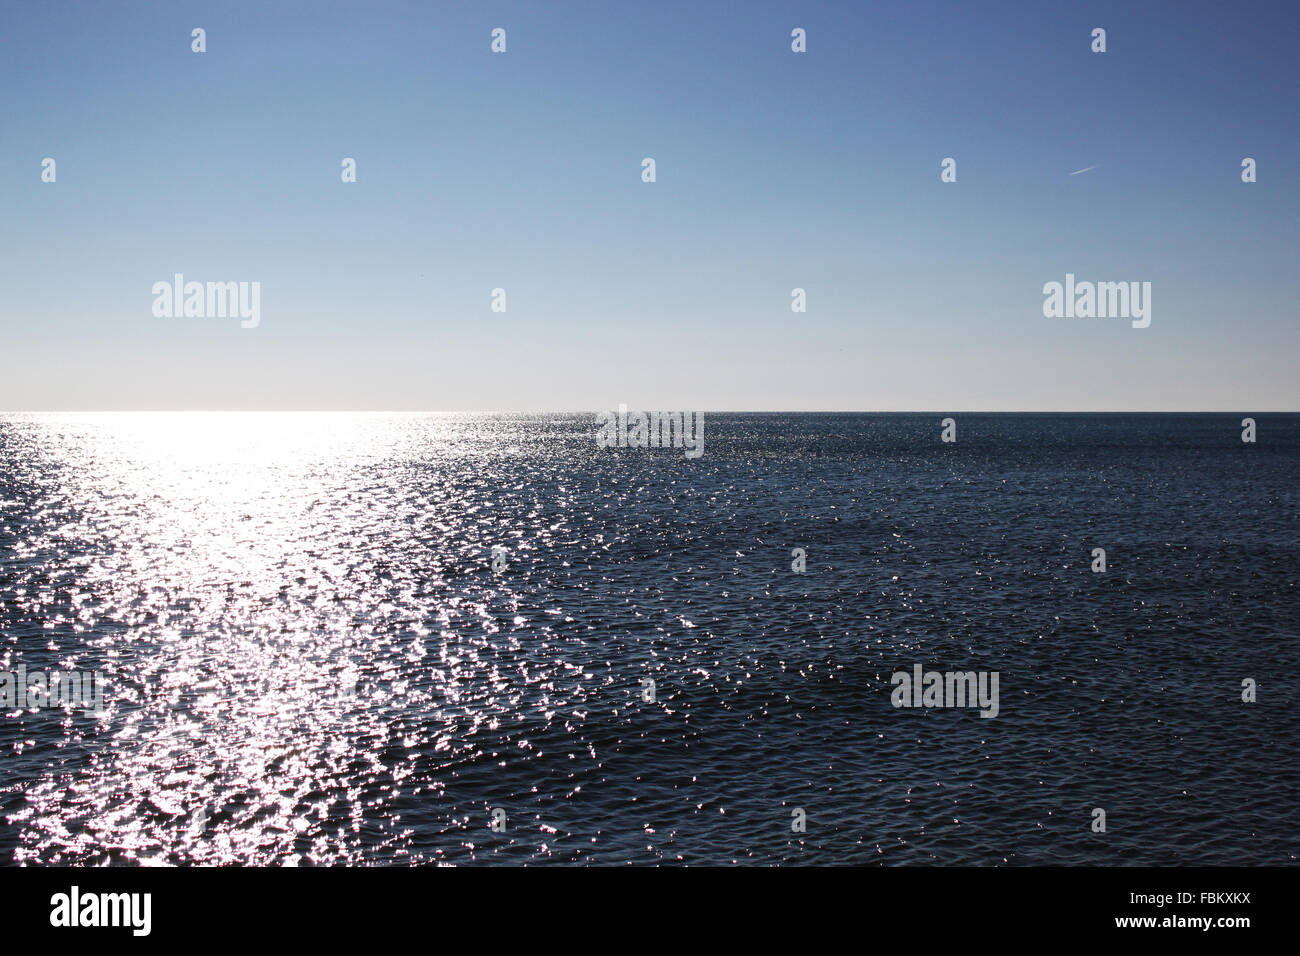 View on the quietly ocean in Narbonne/ France under a cloud-free sky - Stock Image